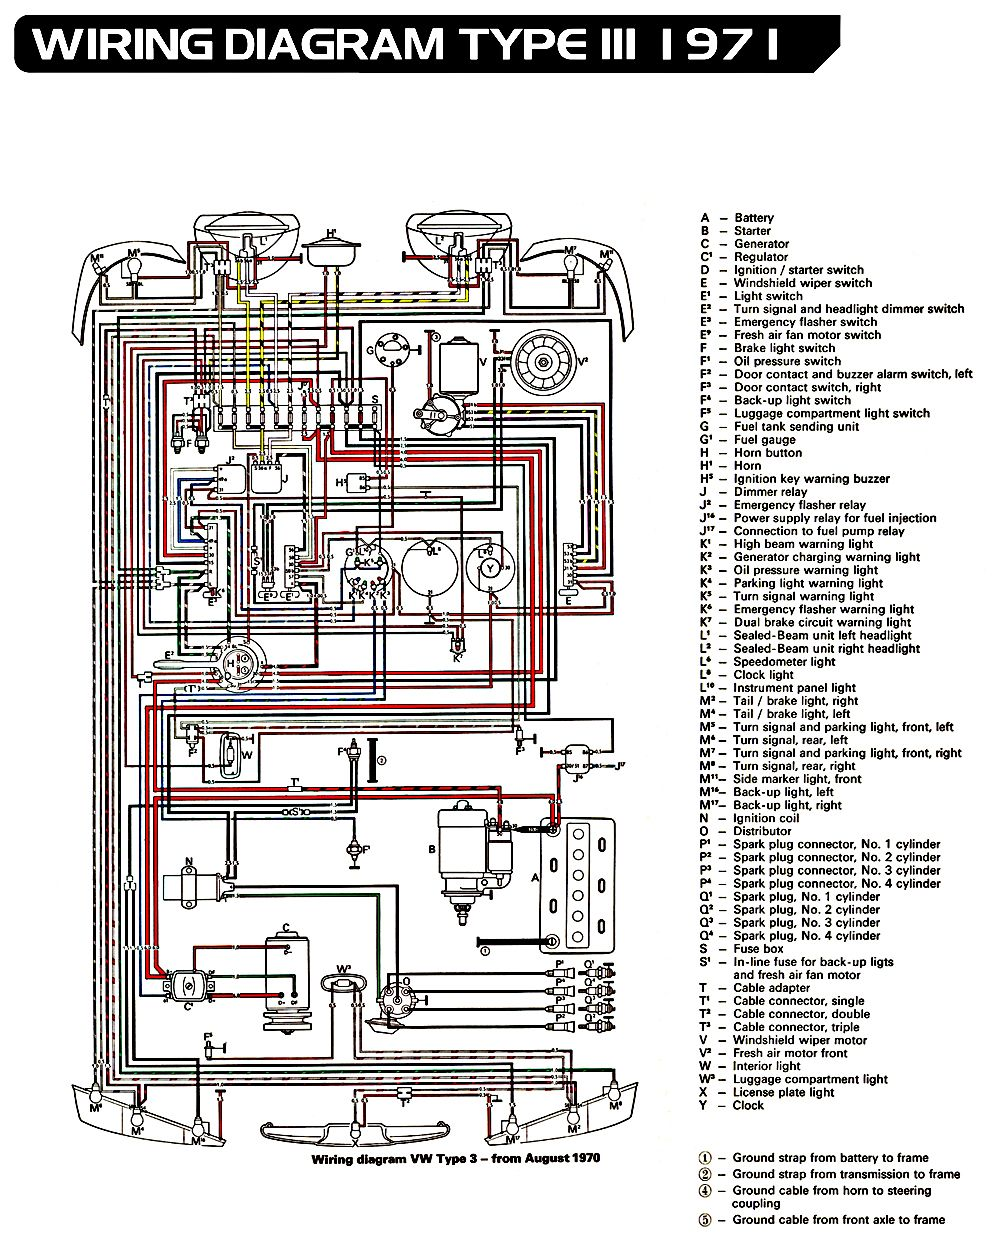 medium resolution of 1971 type 3 vw wiring diagram so simple compared to a modern ecu